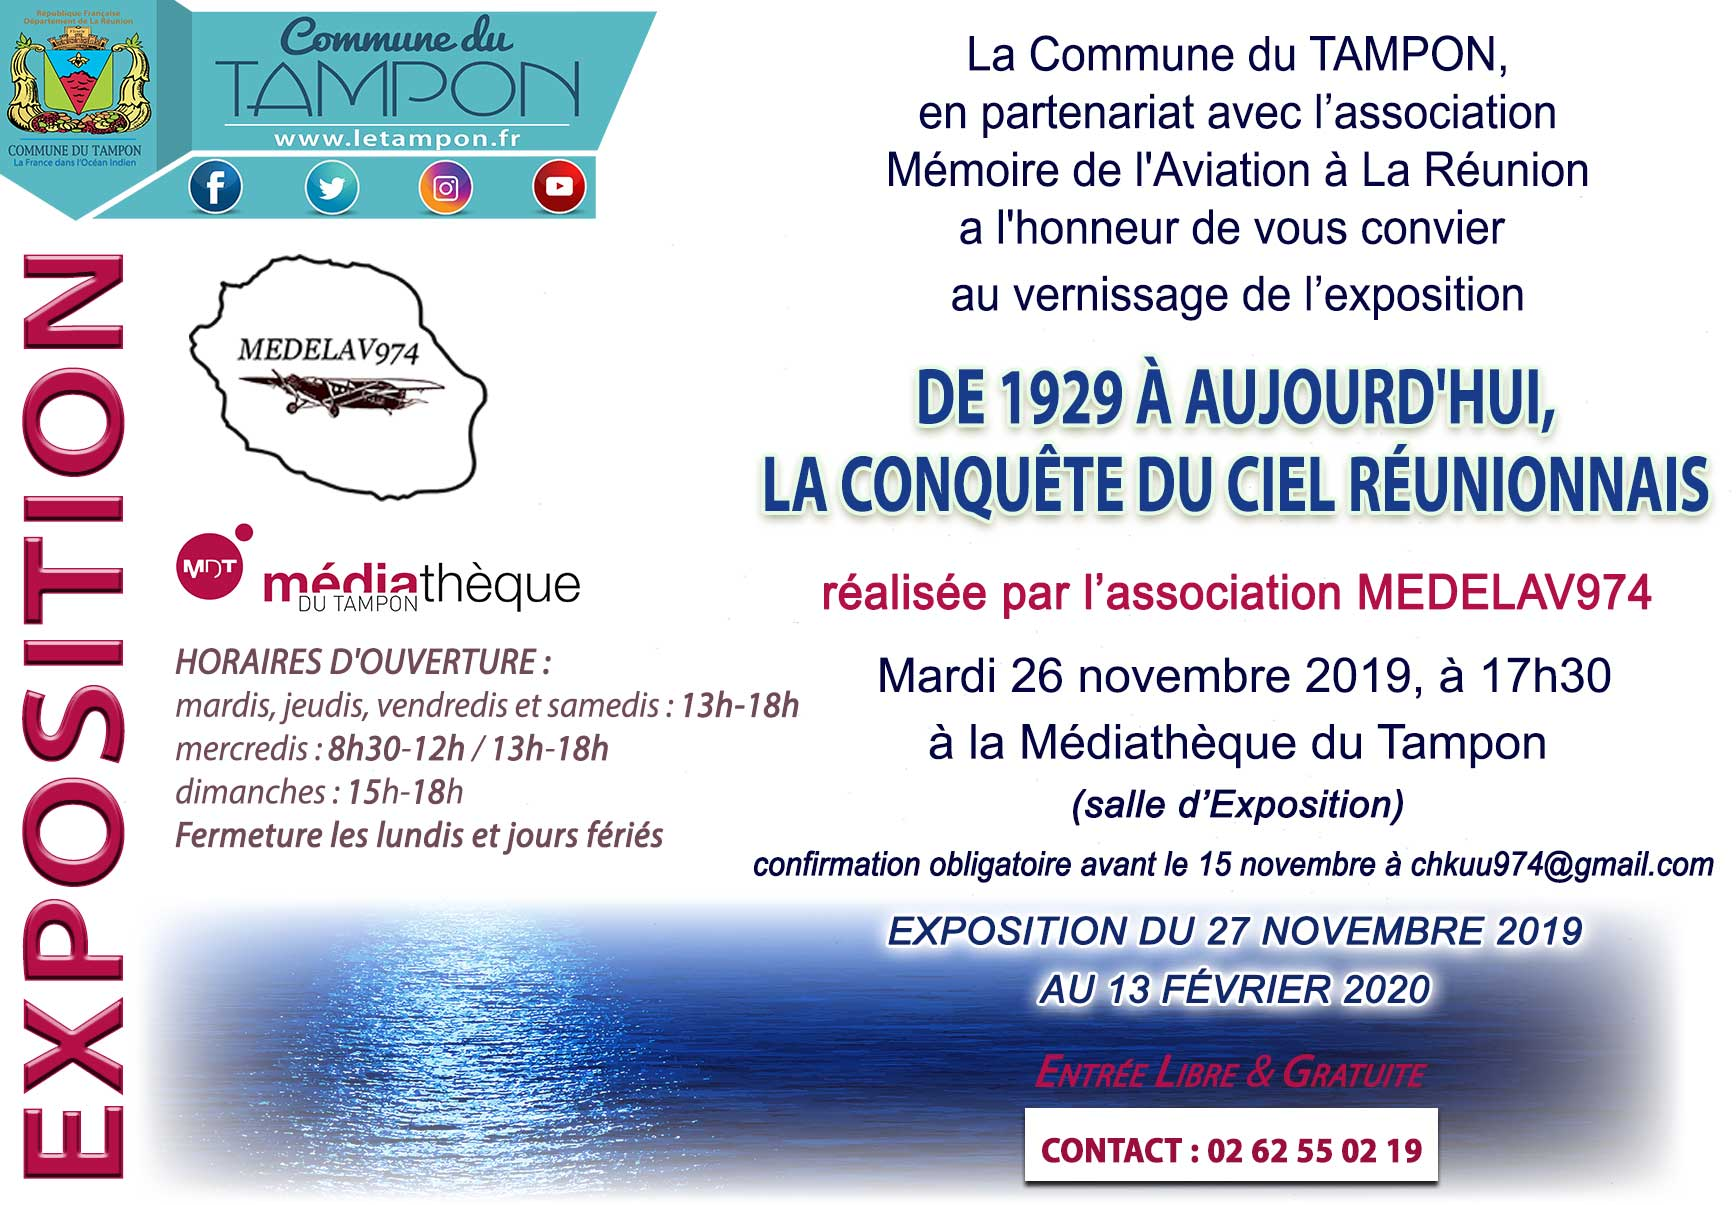 Invit memoire aviation reunion mdtv2